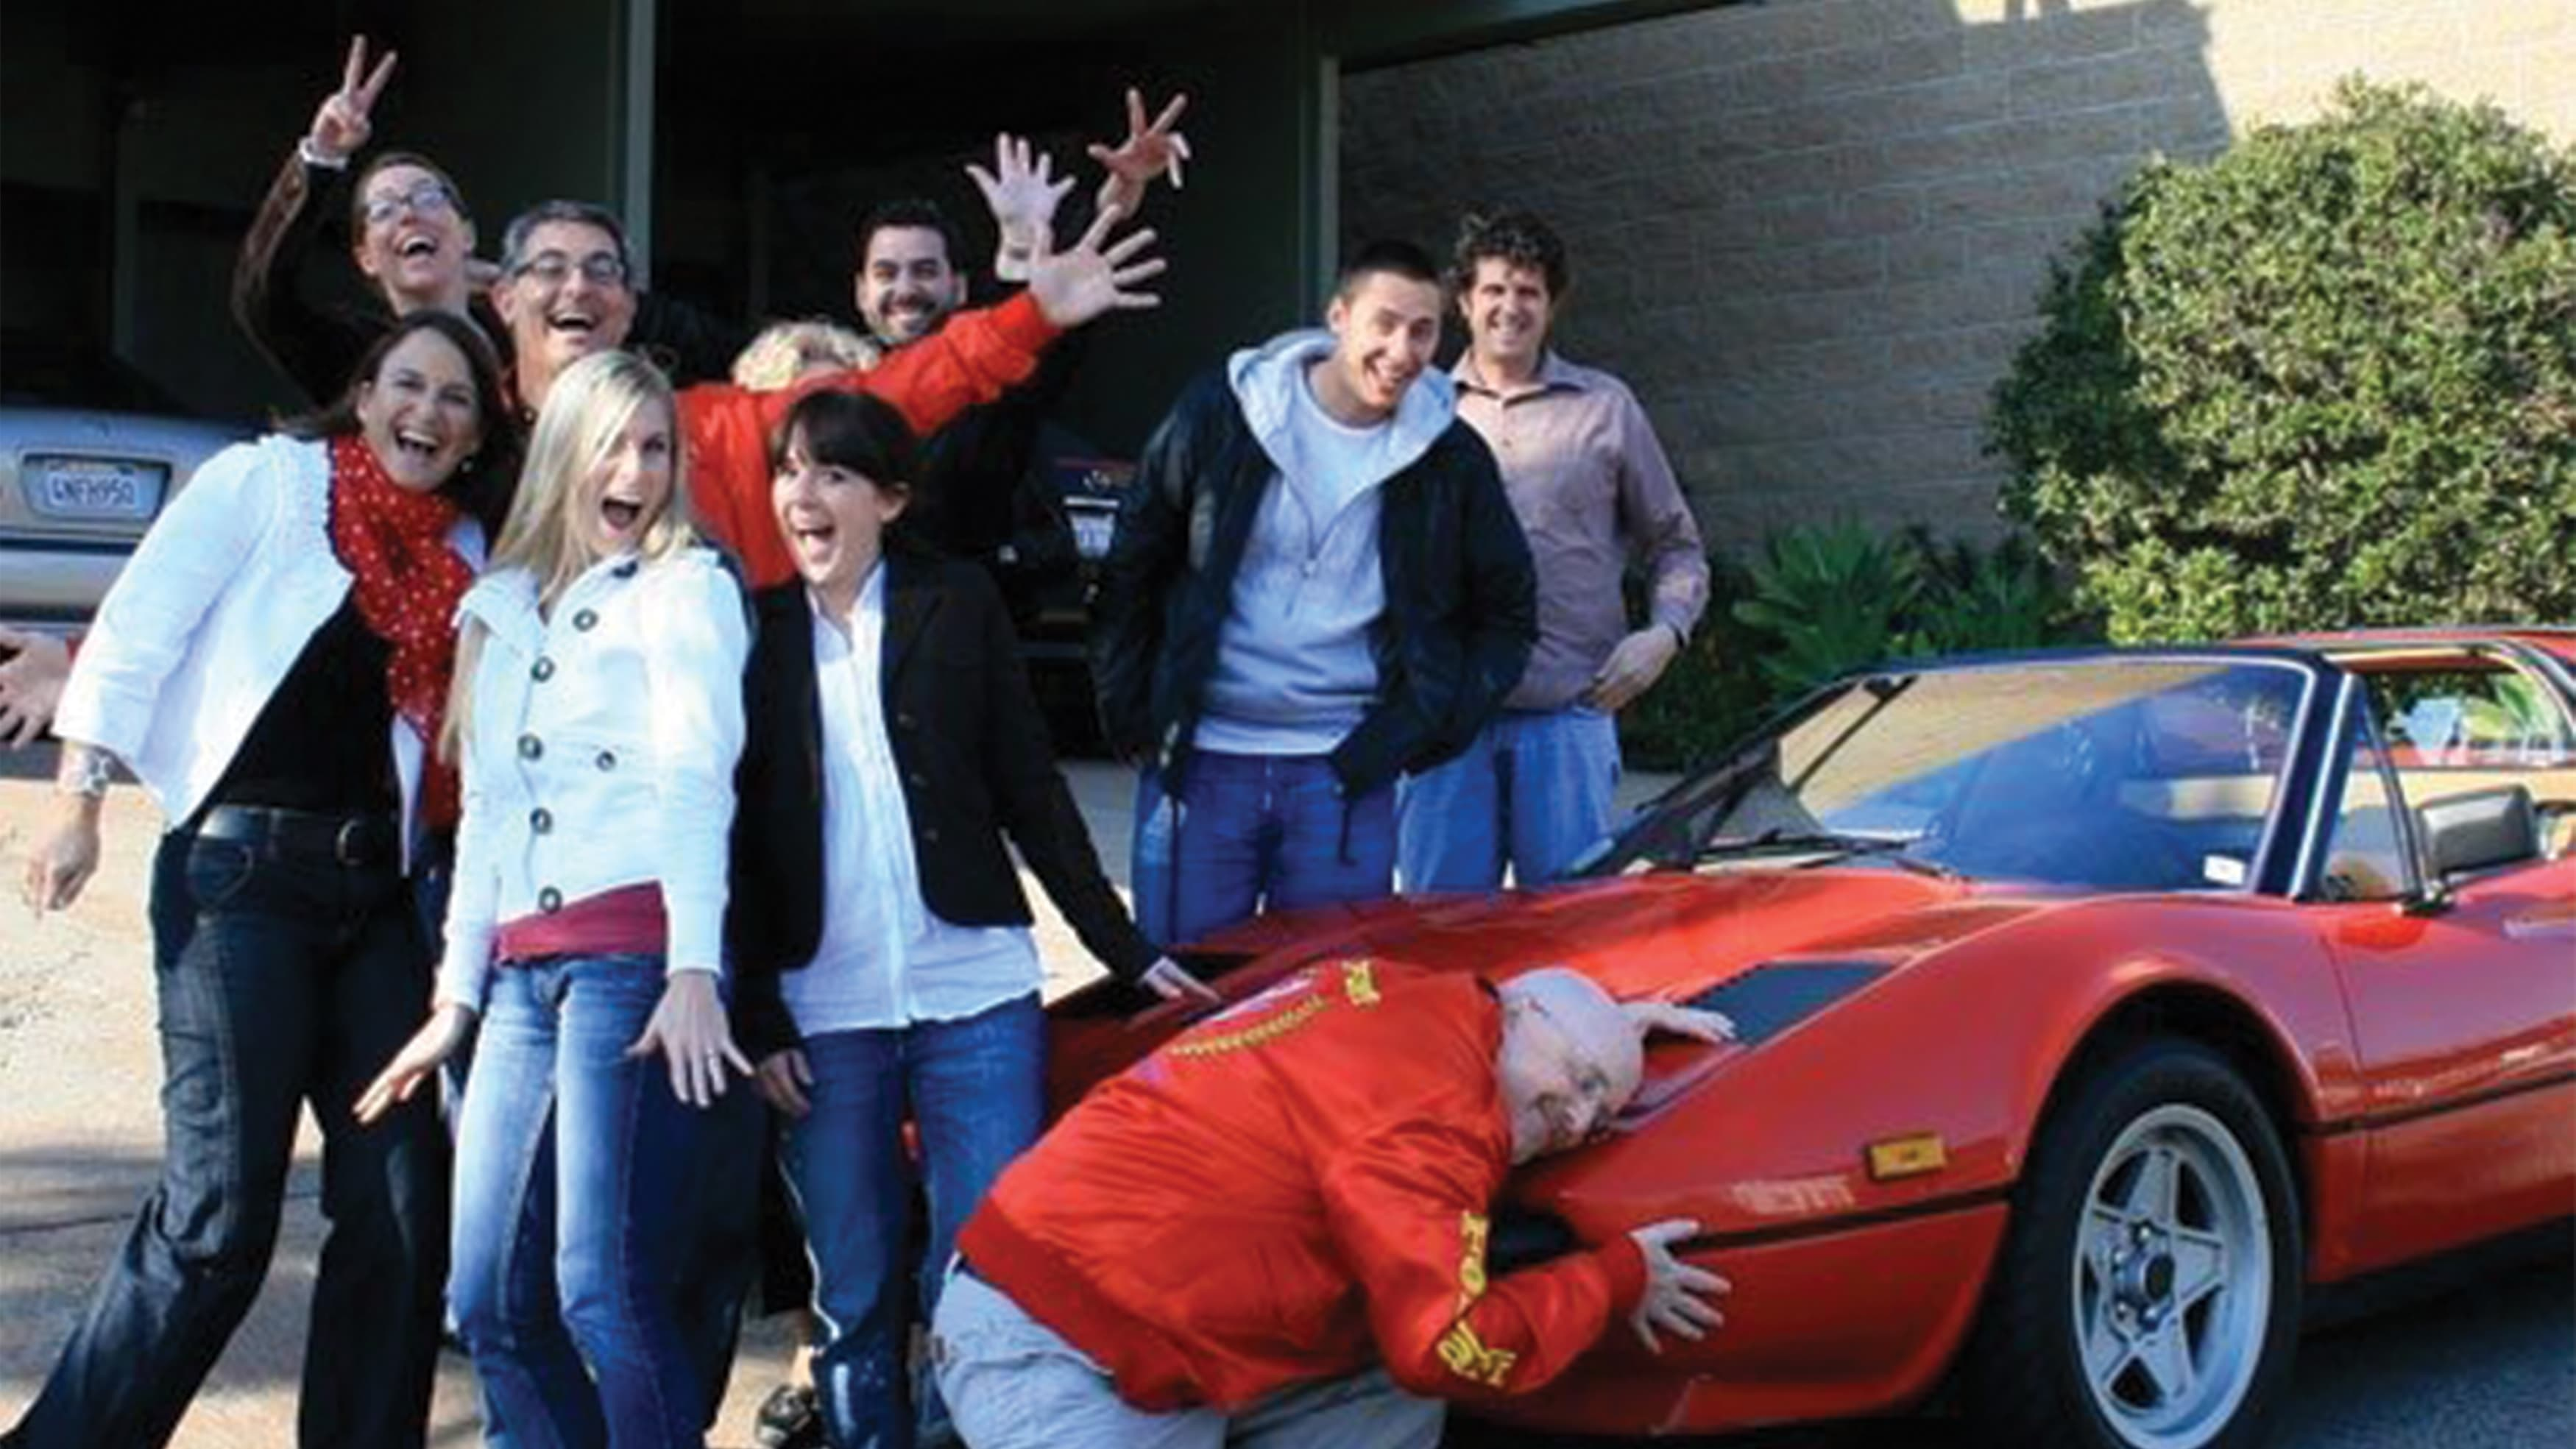 RSM team members gather around a red Ferrari to send off Harry and Martin on their trip to Abu Dhabi